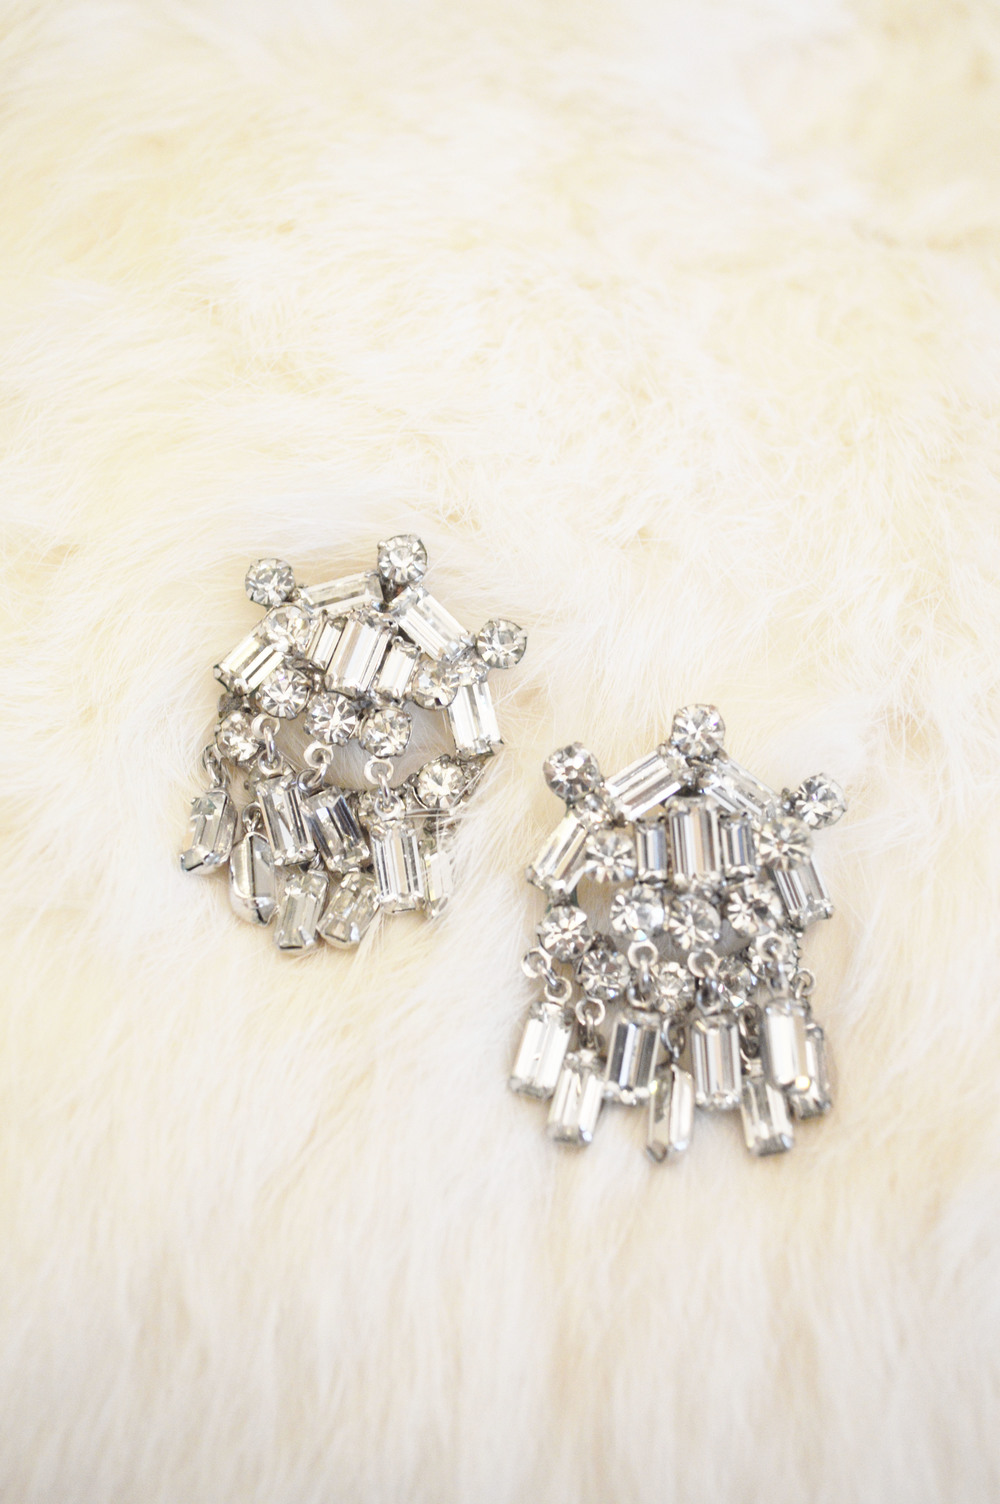 Vintage Bridal Silver And Rhinestone Dangle Statement Earrings With Tassels